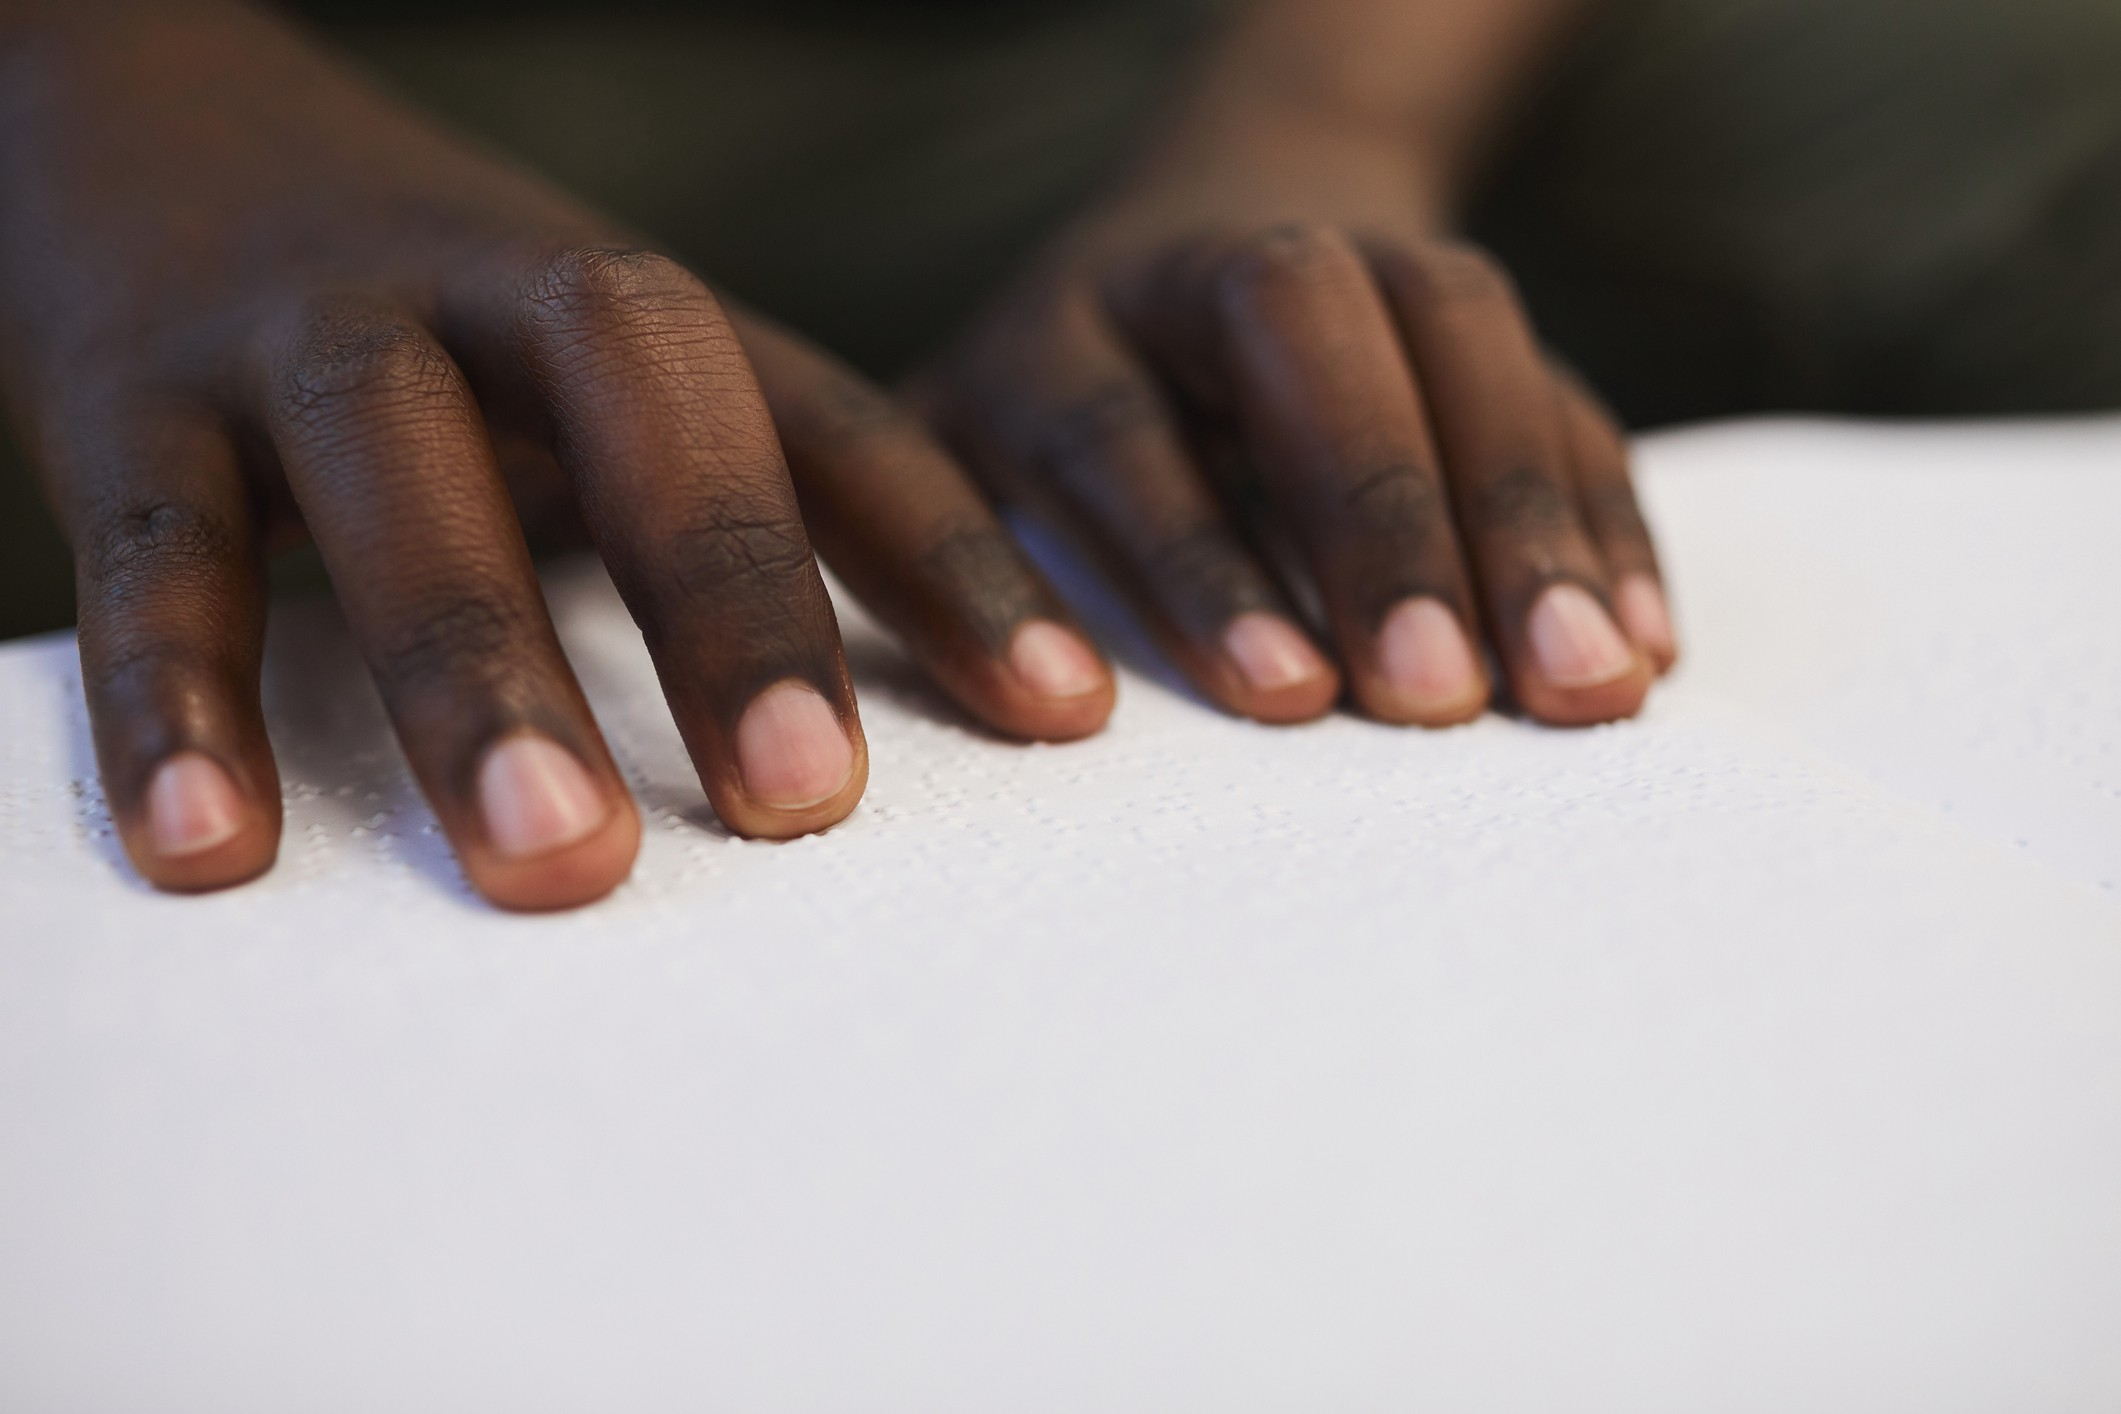 A closeup photo of a black person's hands reading Braille.